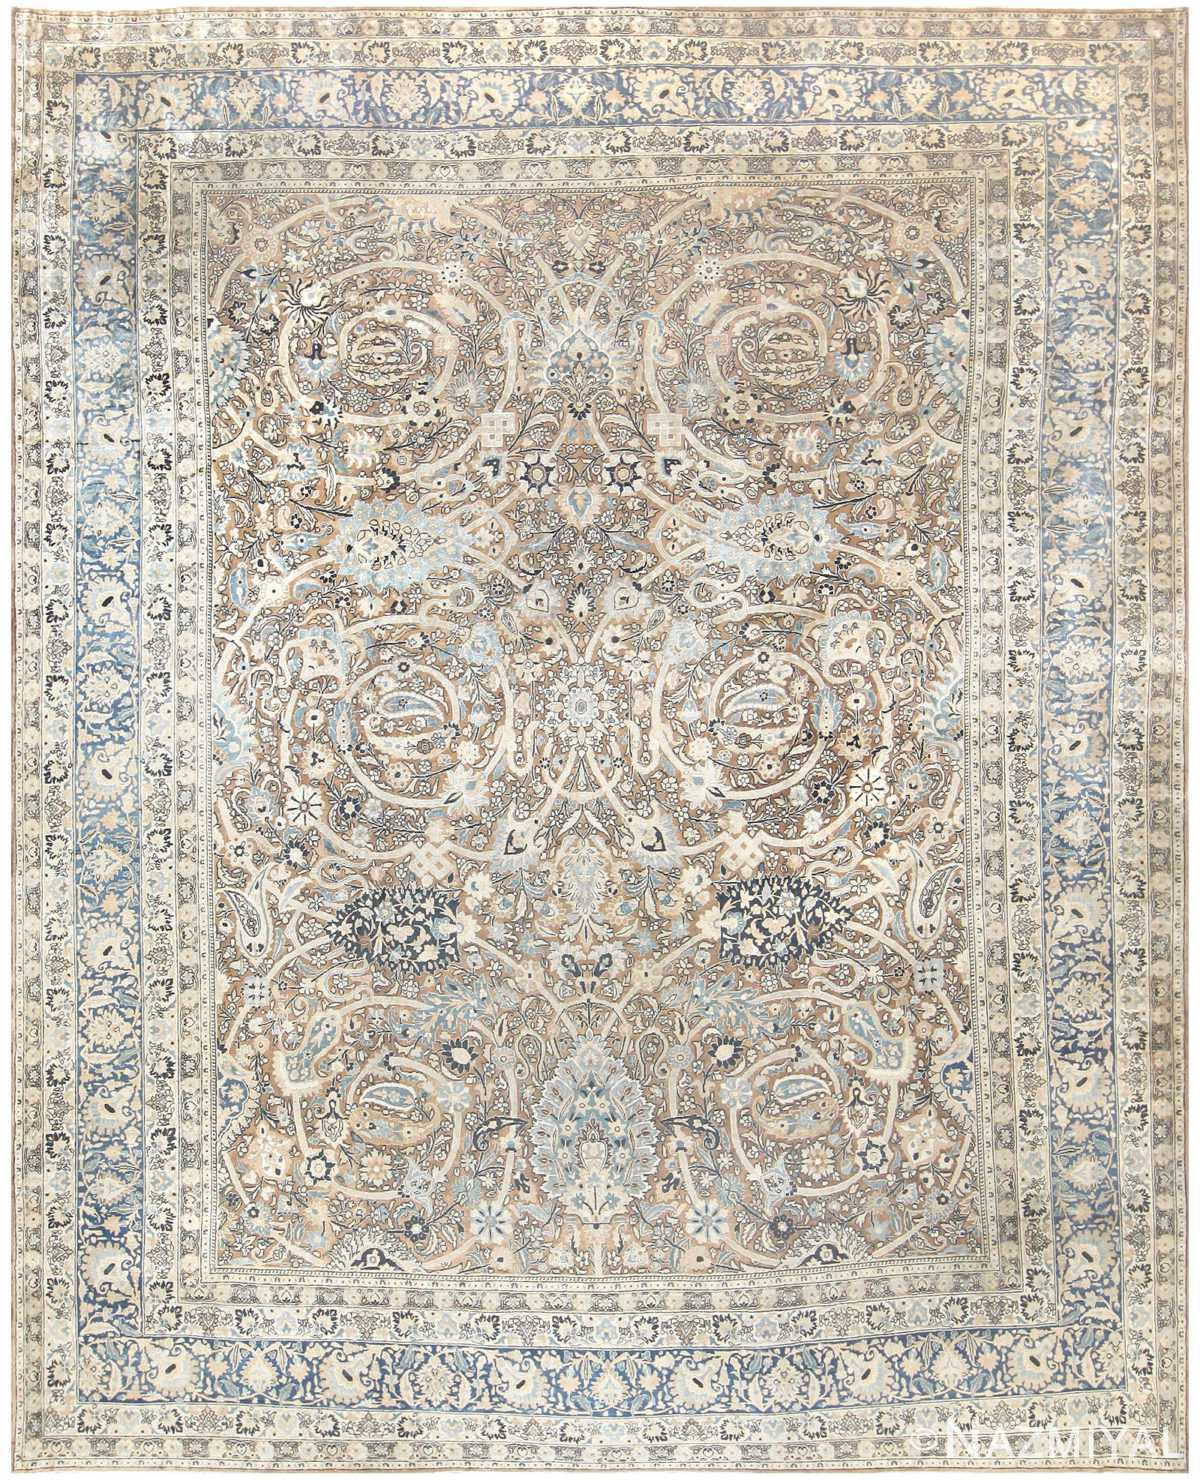 Vintage Persian Rugs: Antique Persian Khorassan Rug 50169 By Nazmiyal Collection